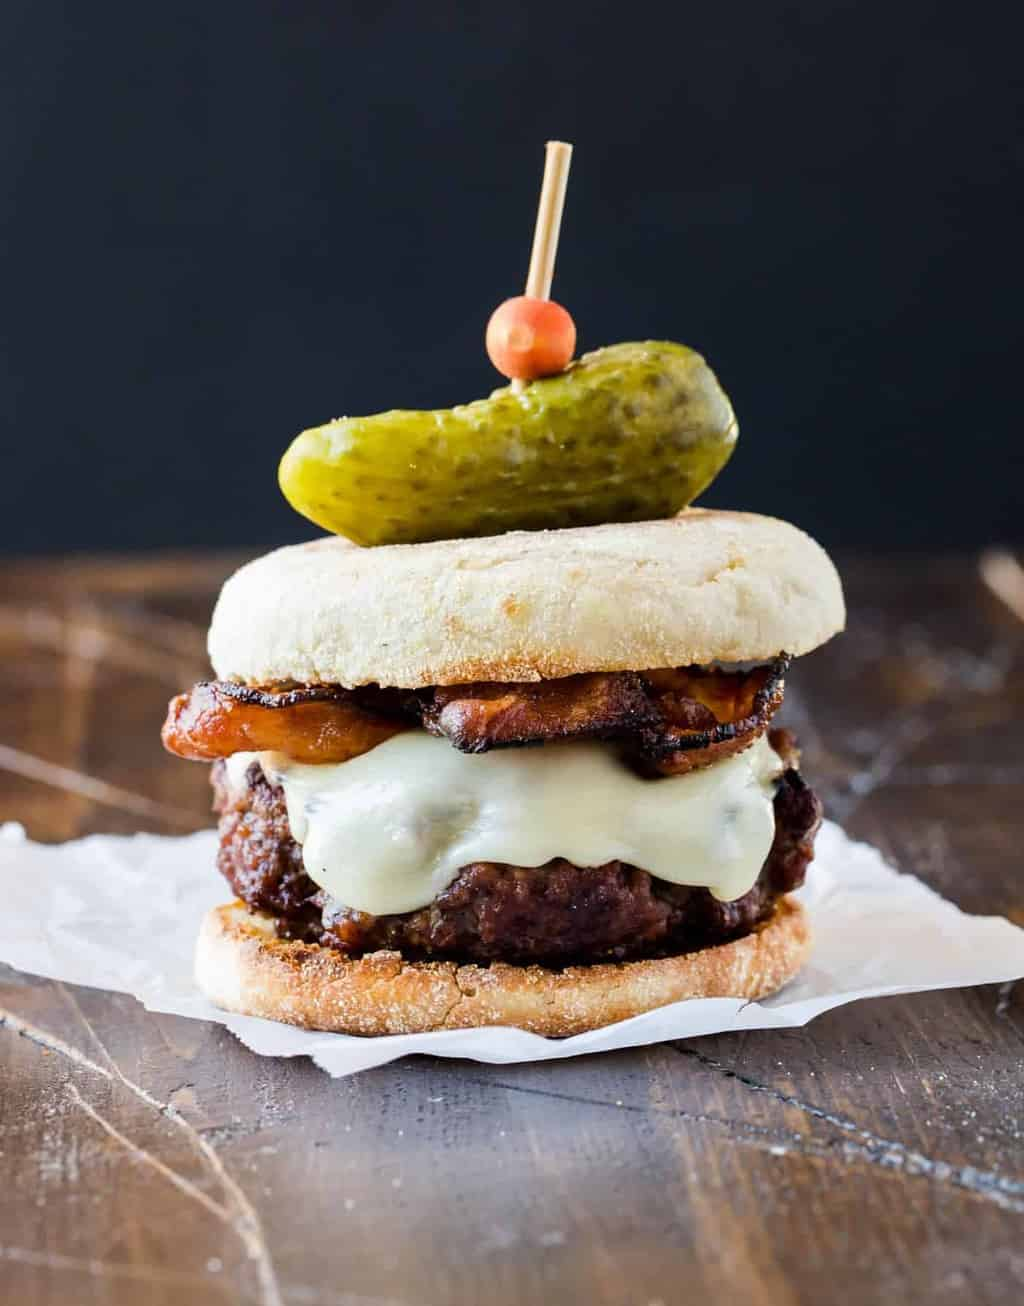 It's easy to be Irish on St. Patrick's Day with this Guinness Burger with Irish Cheddar and Bacon recipe!